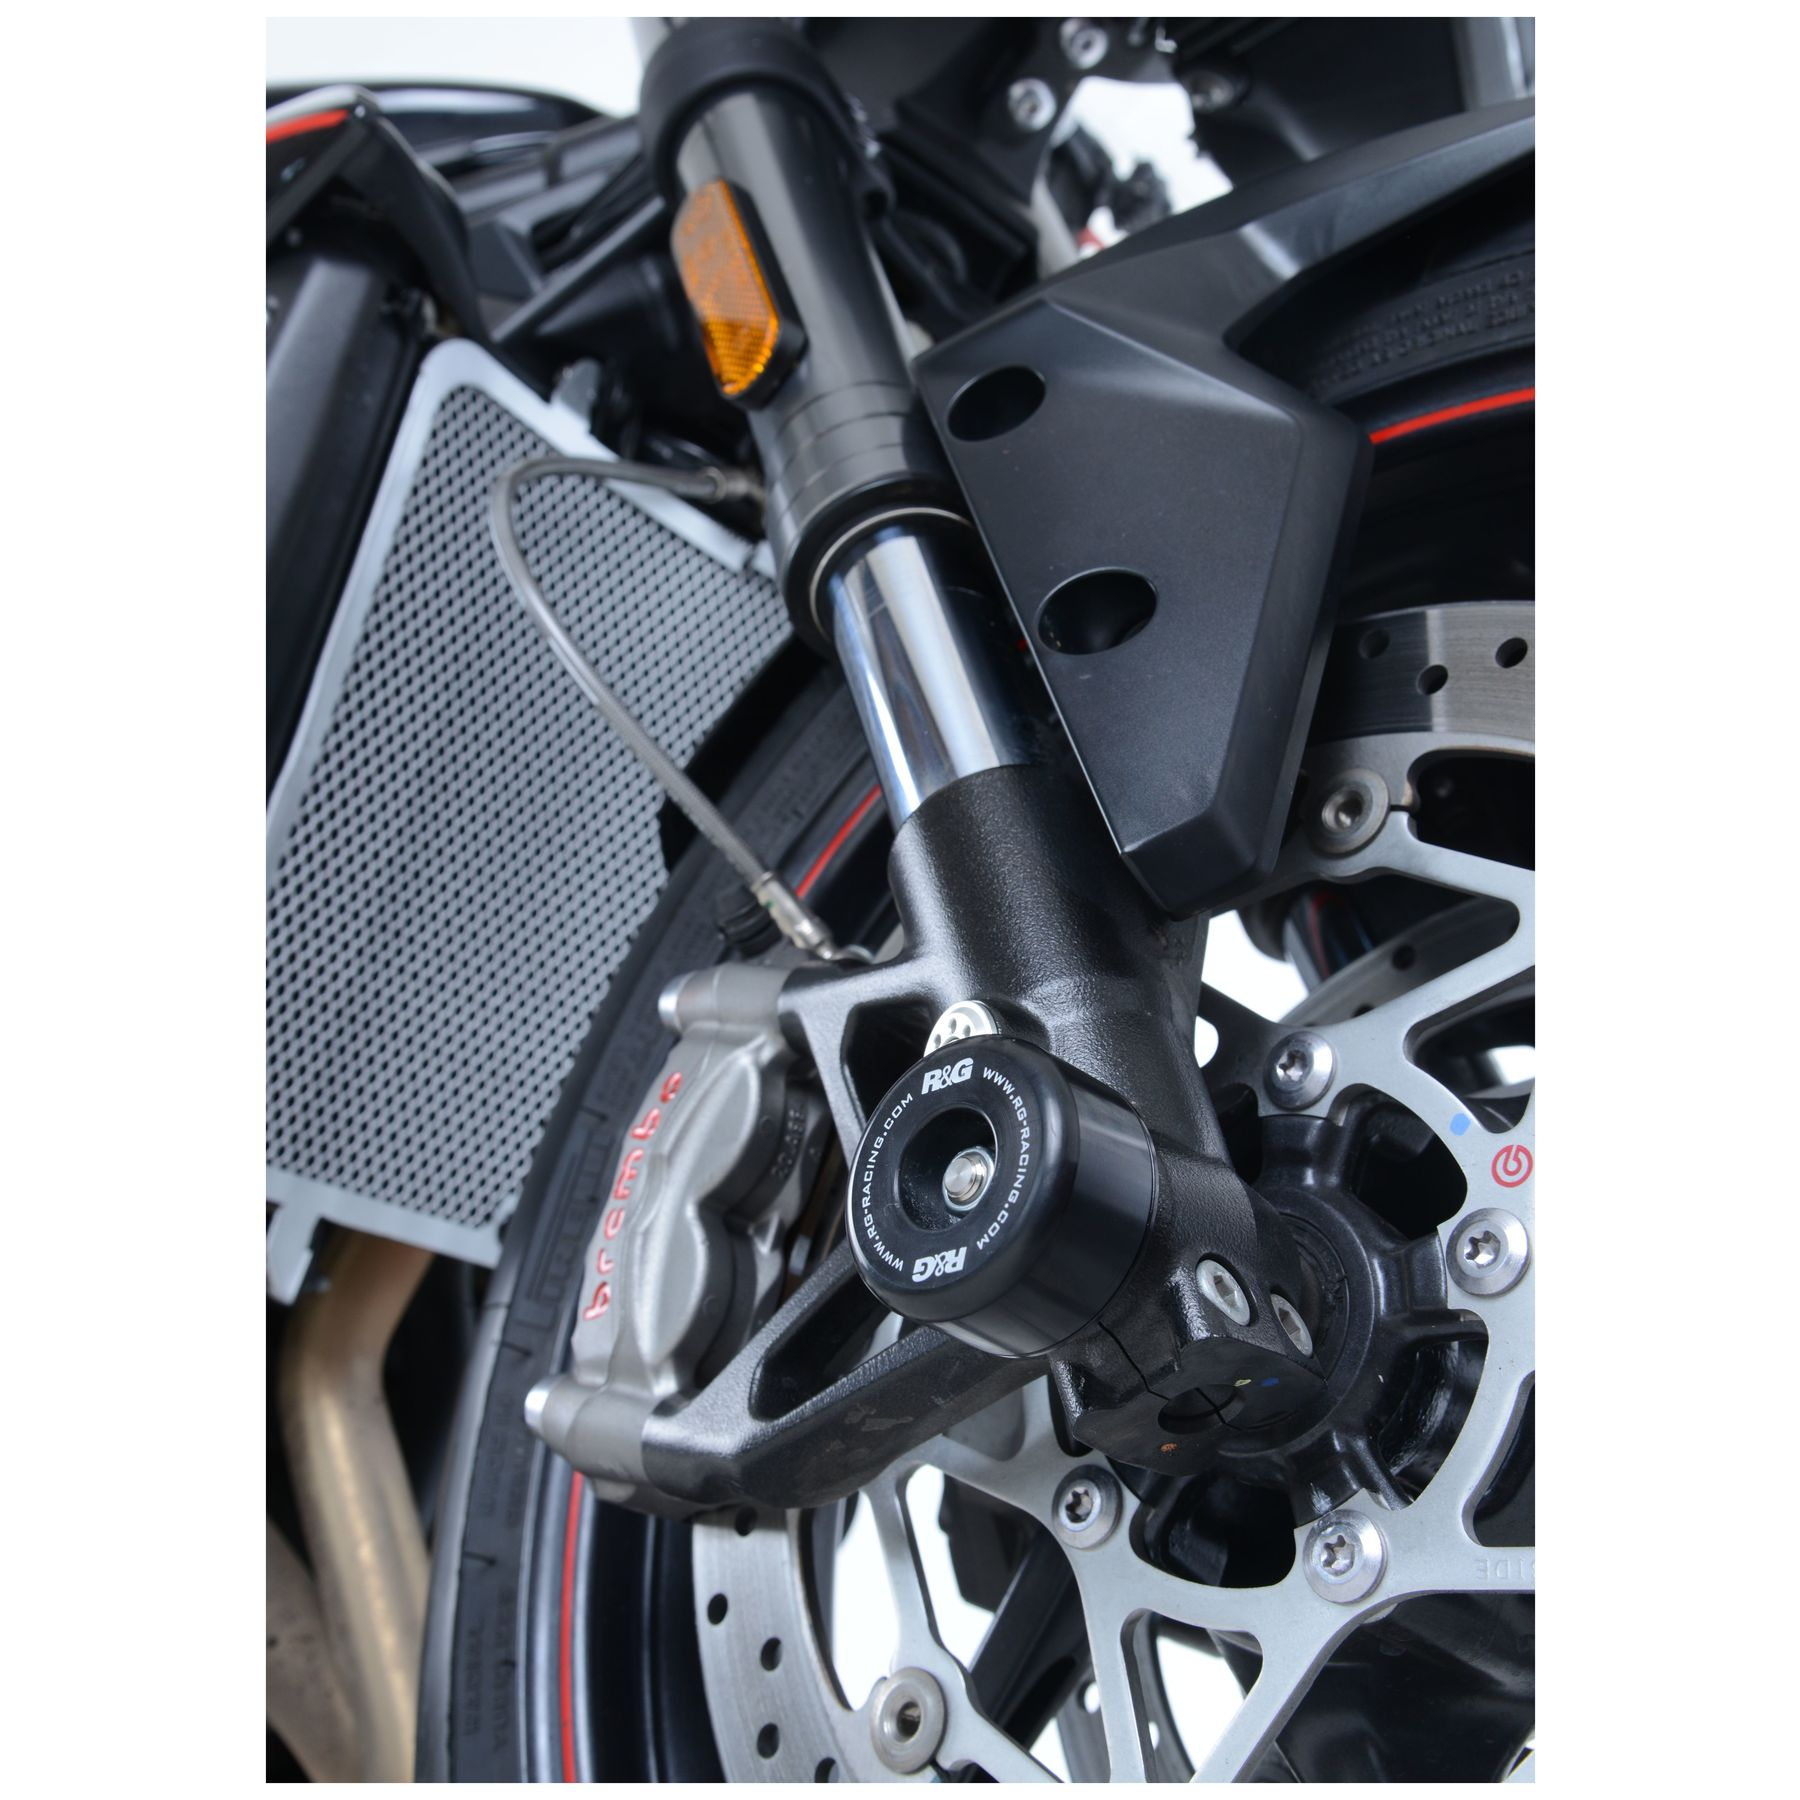 Fender Eliminator Kit for Triumph Street Triple R S 765 RS 2013-2018